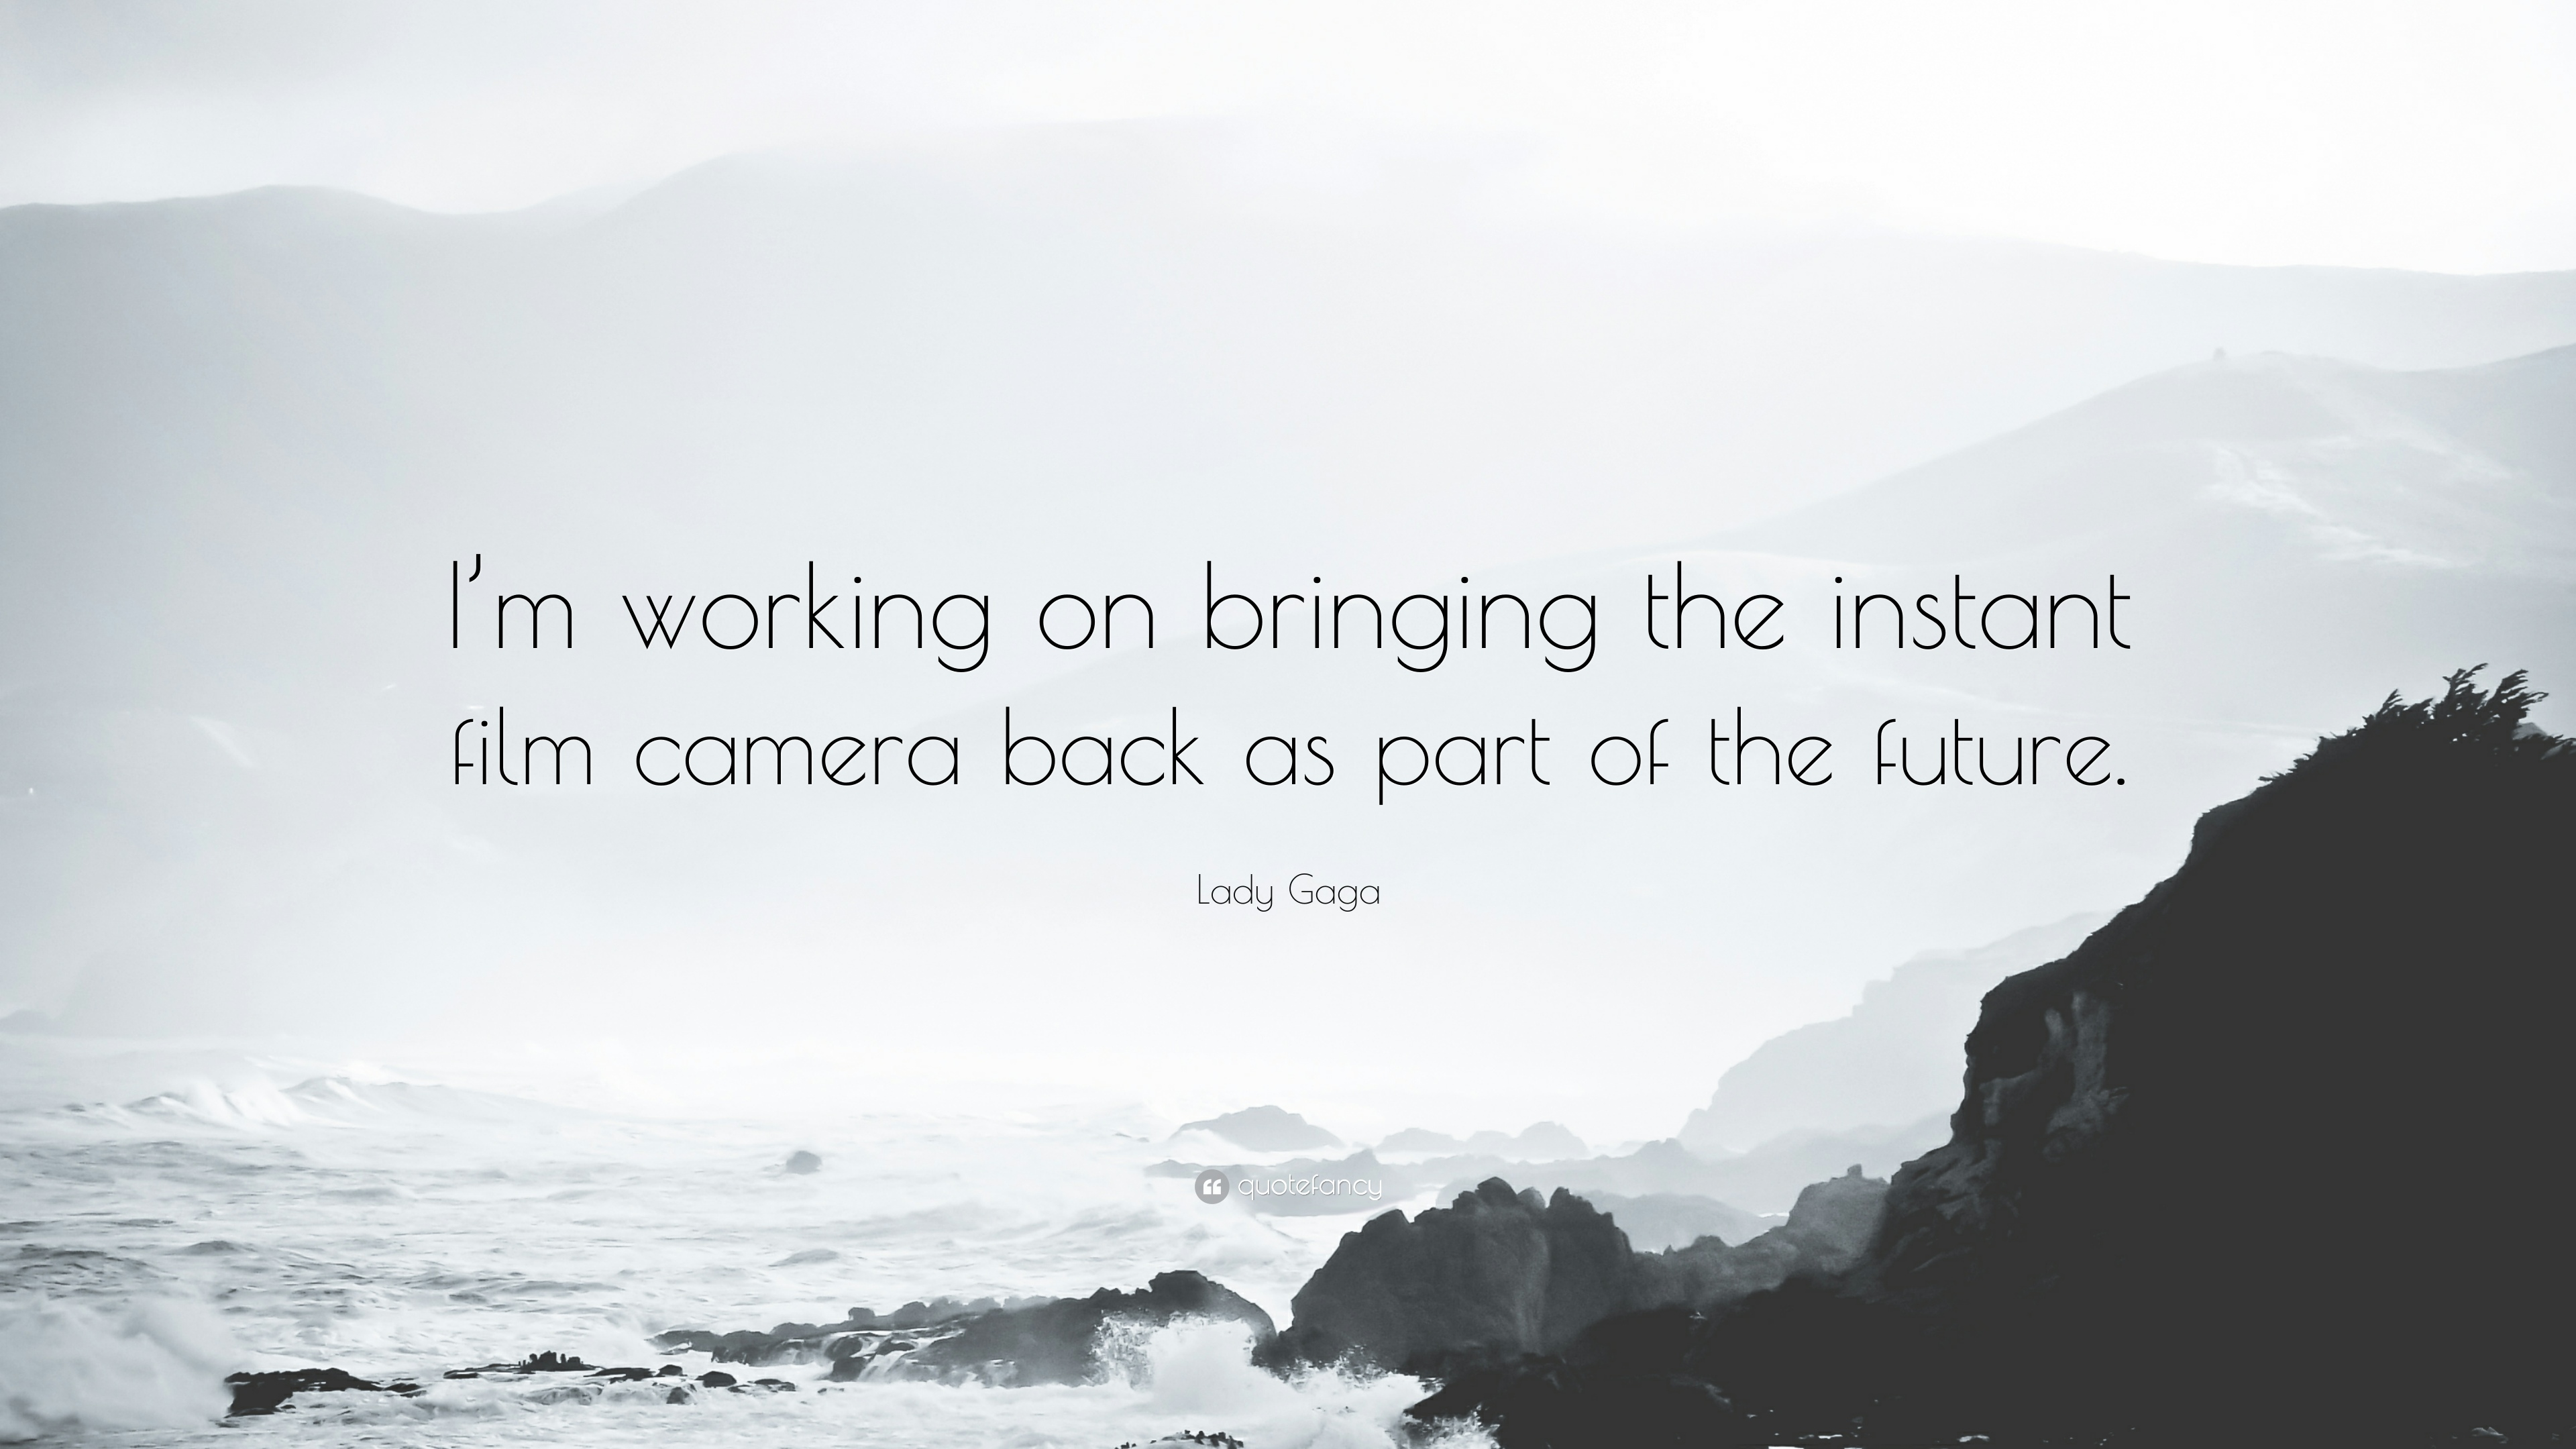 Lady Gaga Quote Im Working On Bringing The Instant Film Camera Of A Back